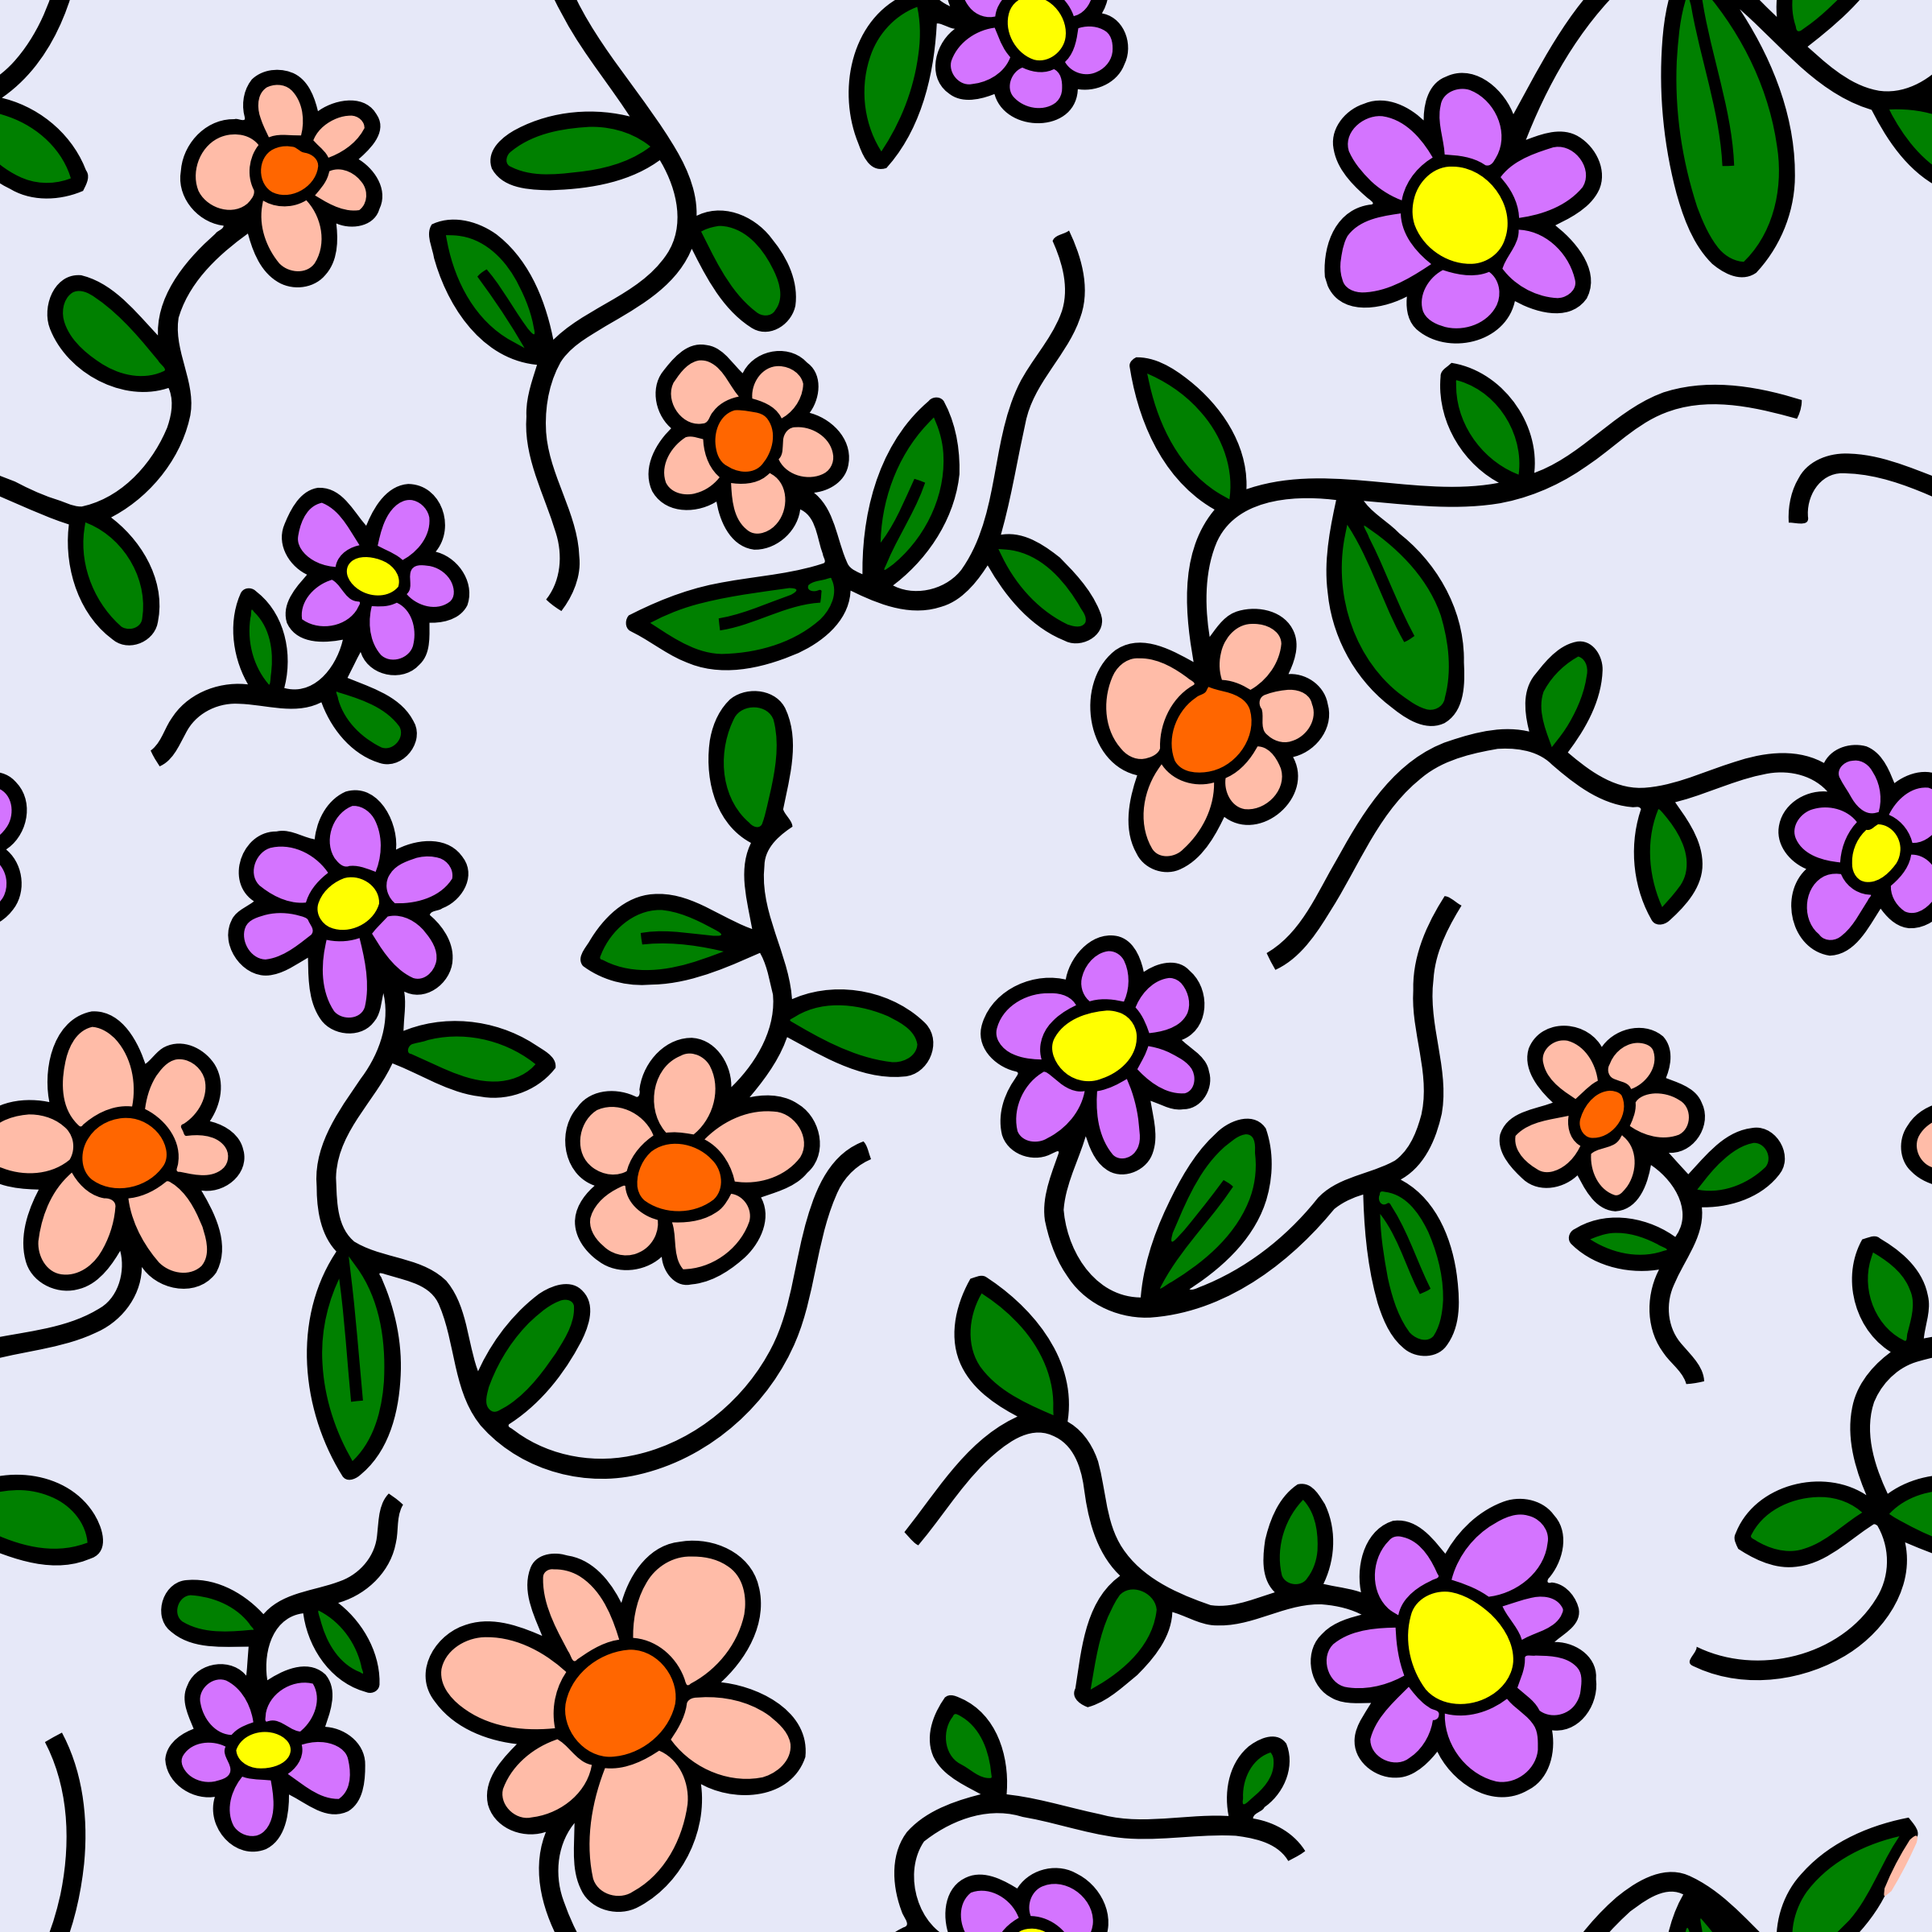 Floral pattern 3 (colour) by Firkin